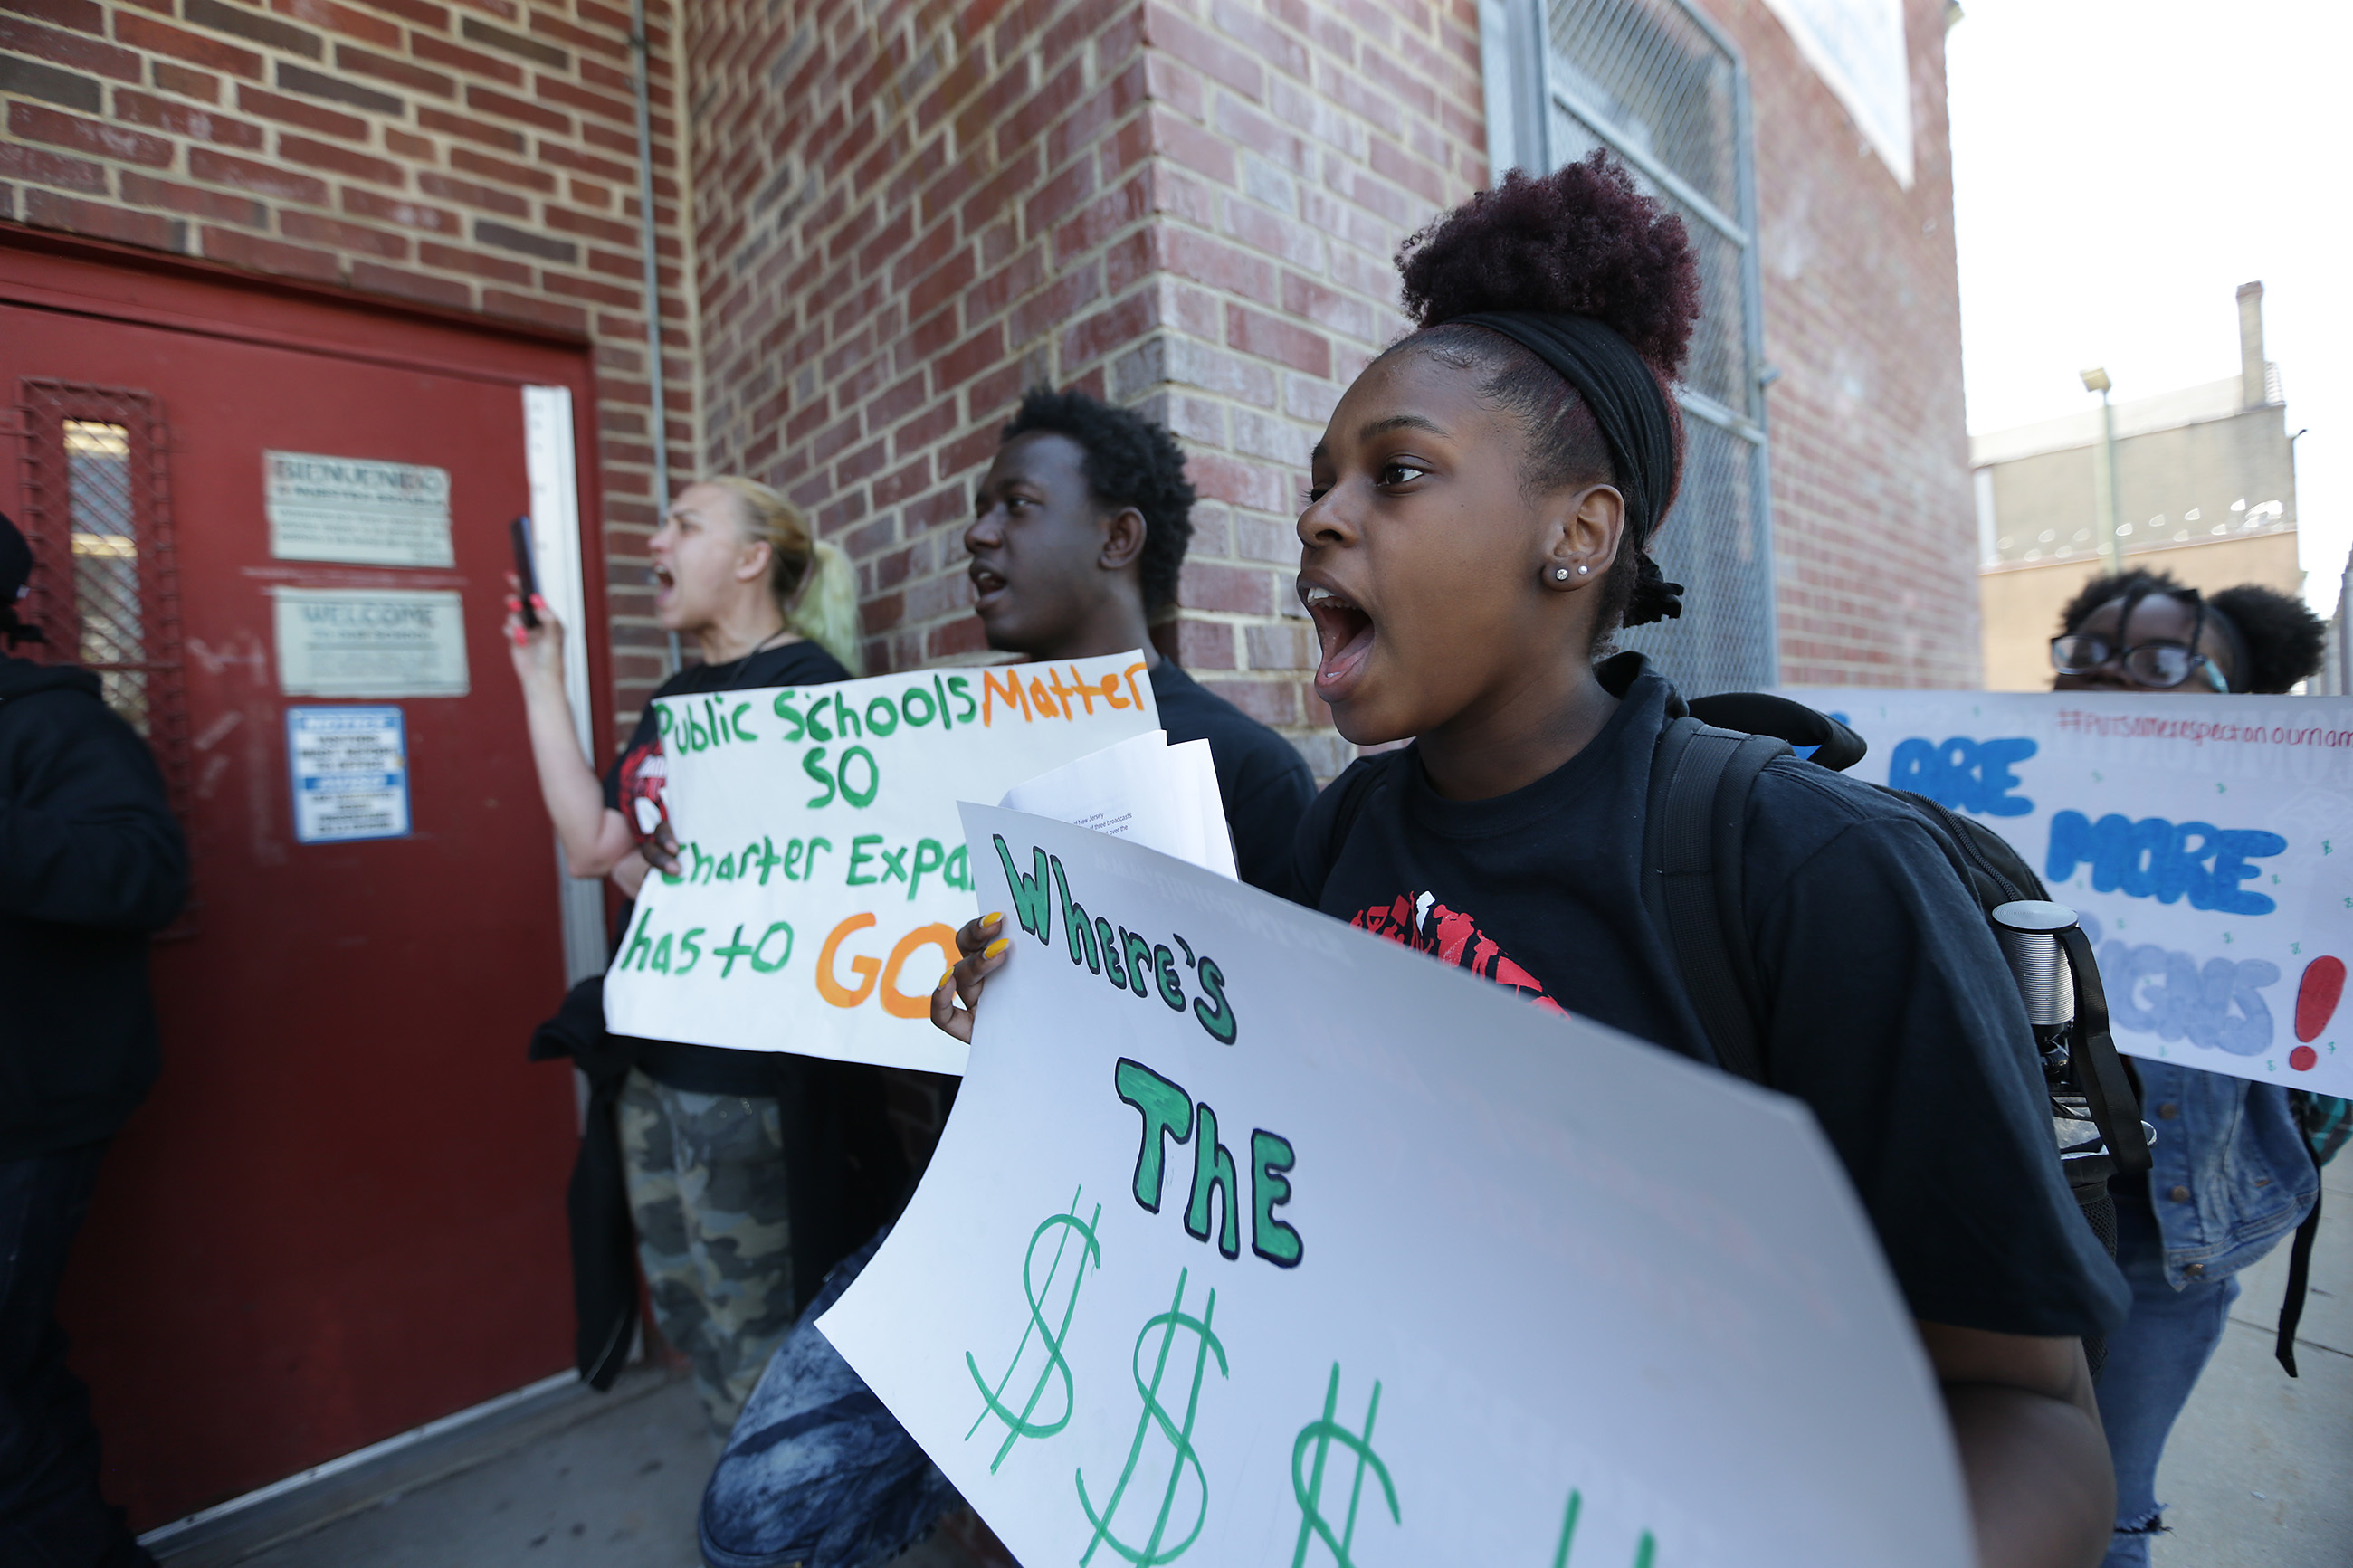 Lanasia Robinson, 16, at right, who is a member of New Jersey Communities United, protests outside the Camden City Board of Education Administration Building in Camden.